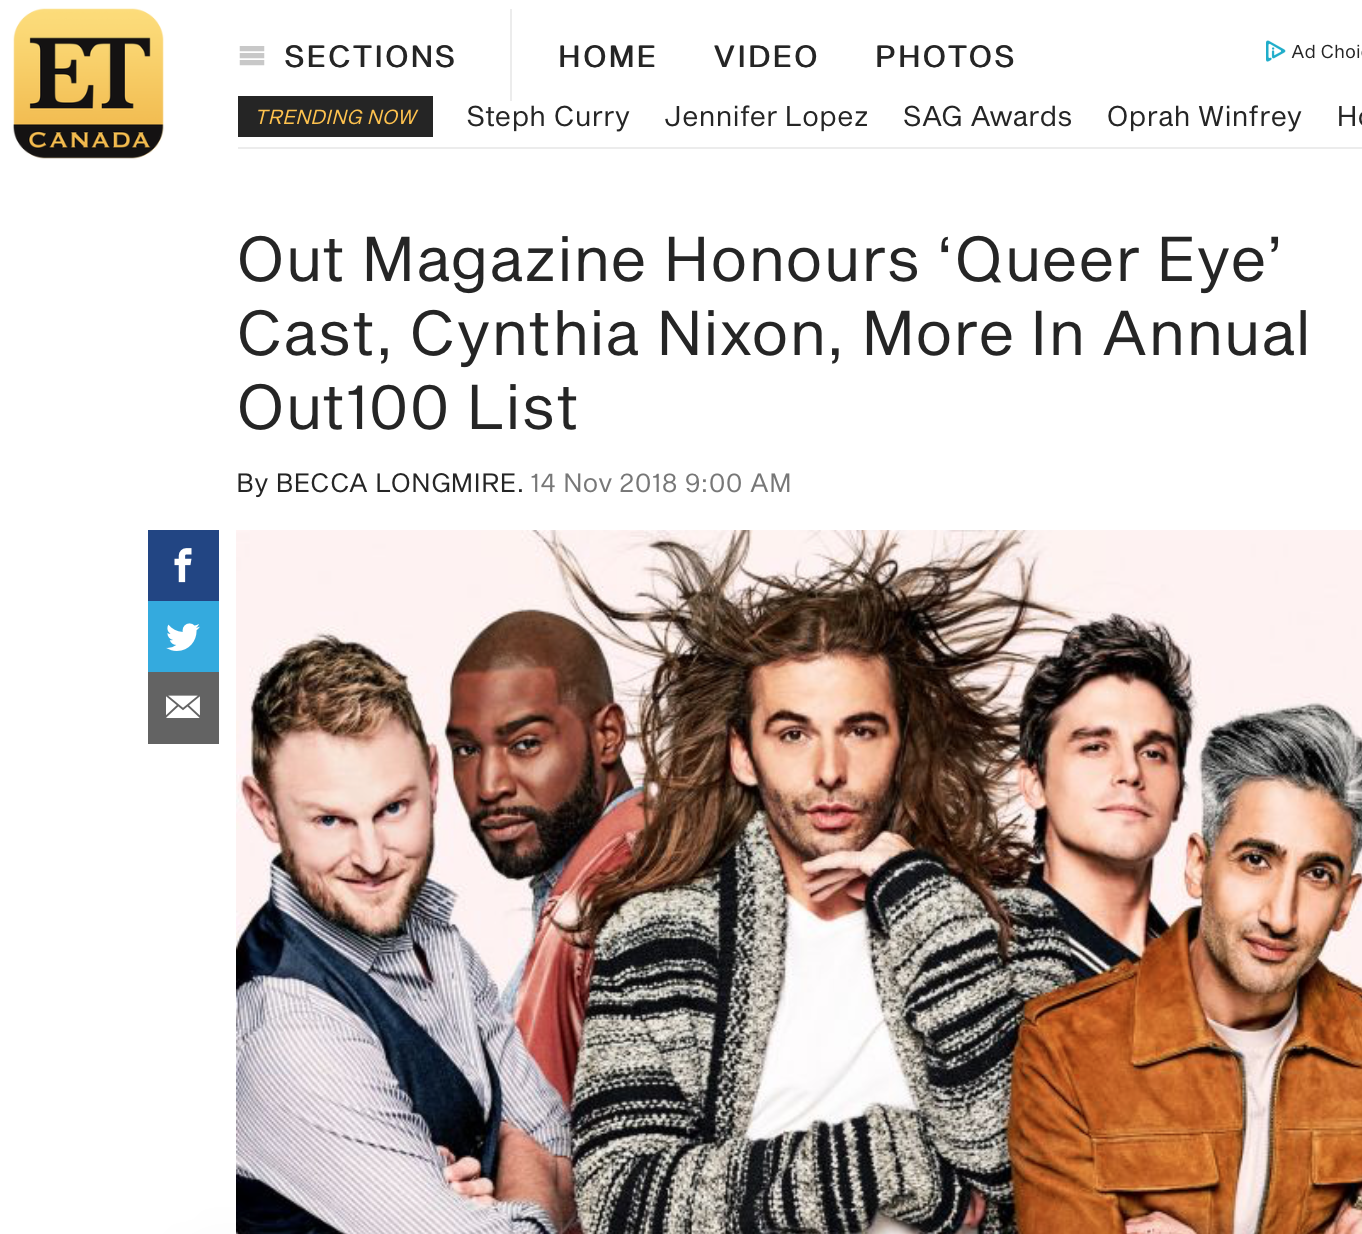 """ET CANADA    """" Out 's executive editor R. Kurt Osenlund said of the most diverse Out100 portfolio ever, 'Young queer people are unaccepting of anything that centers around a single, tired narrative, they are forcing change in the way society views normalcy, uses pronouns, embraces intersectionality, and creates media.'"""""""